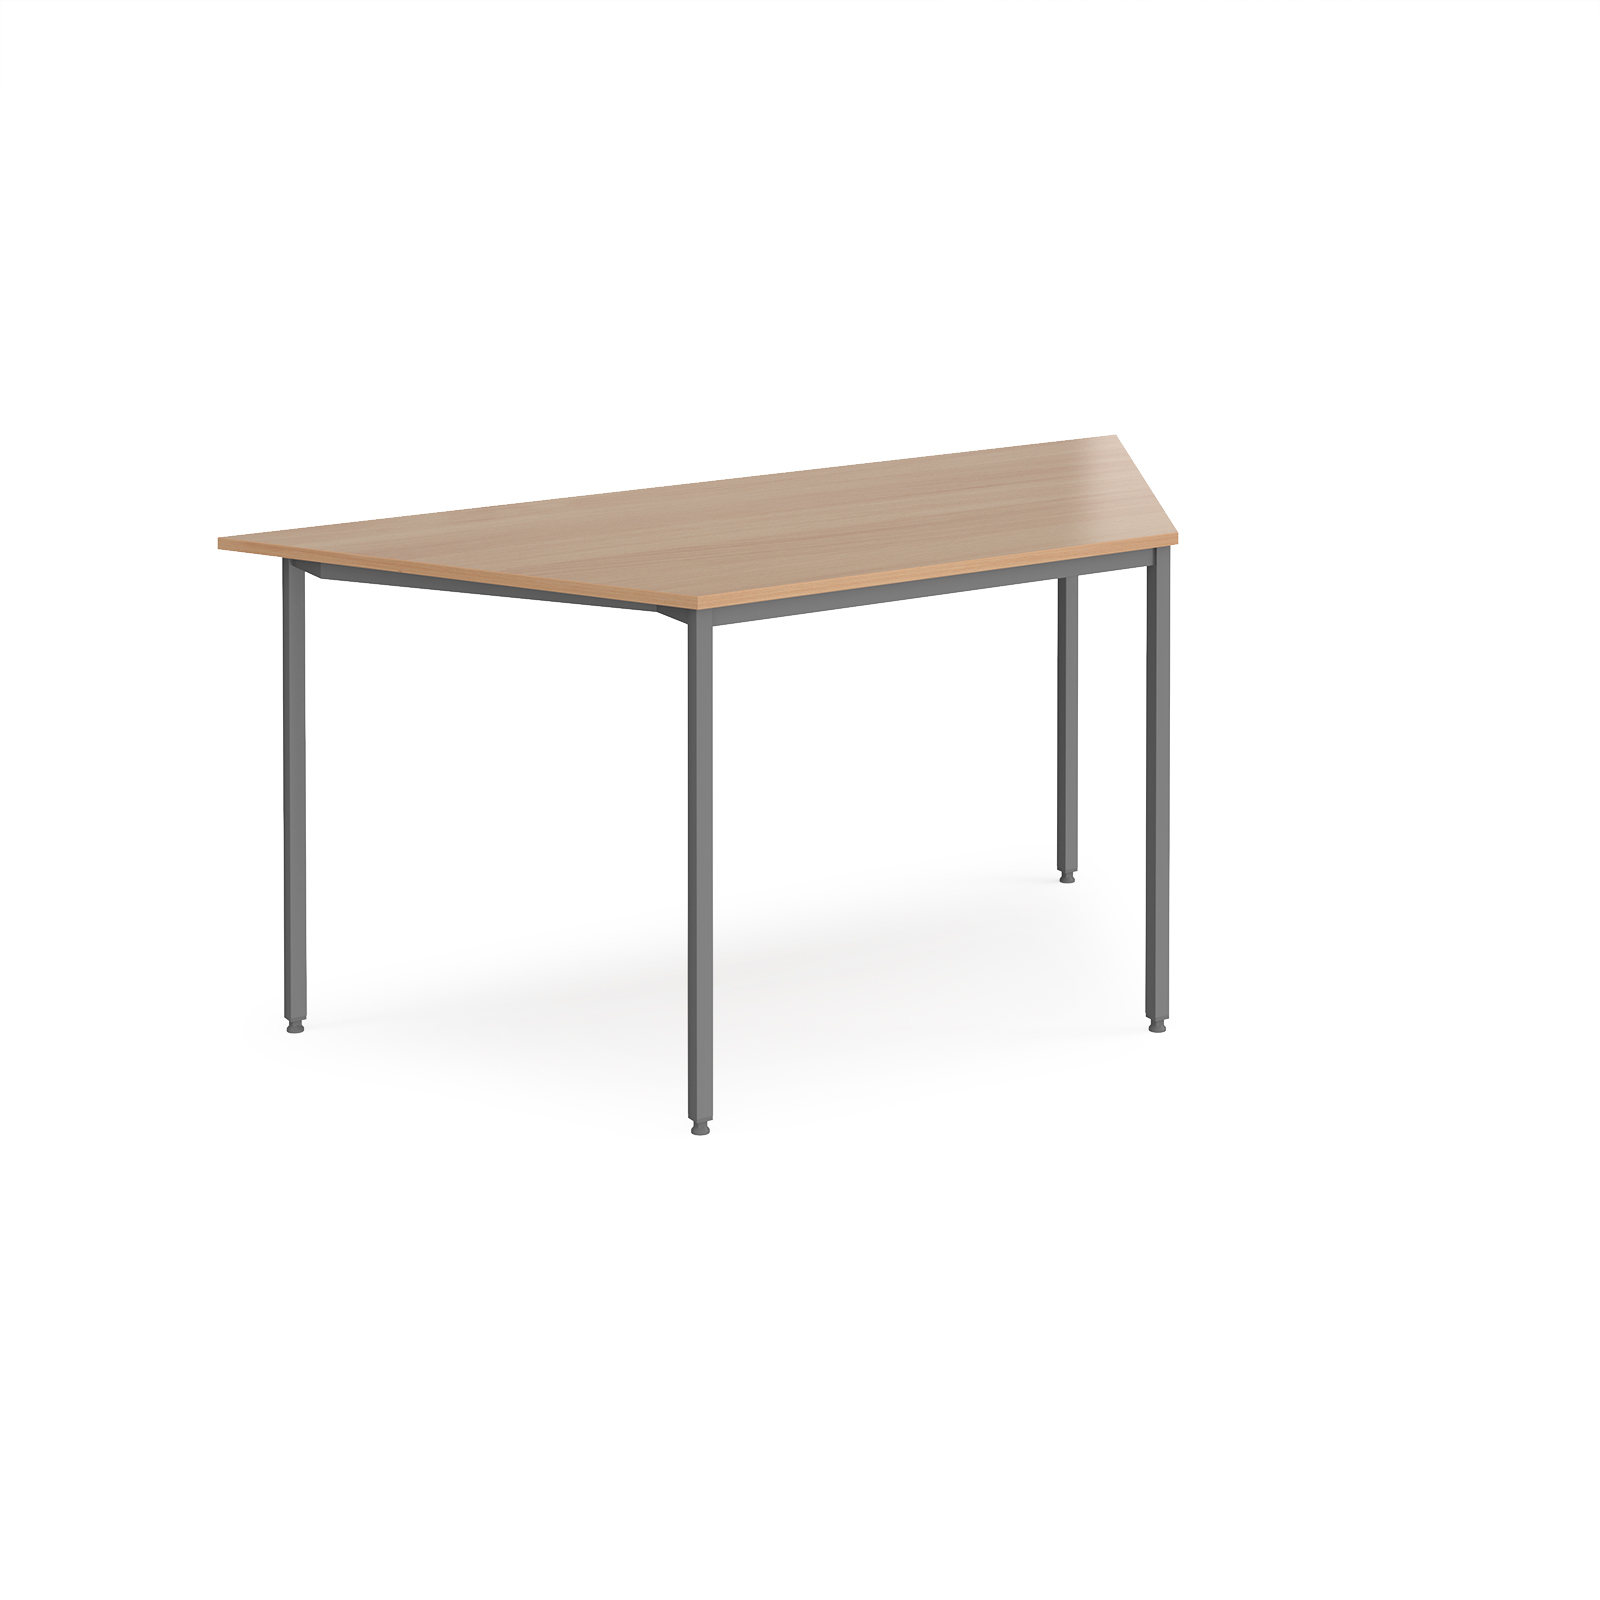 Trapezoidal flexi table with graphite frame 1600mm x 800mm - beech